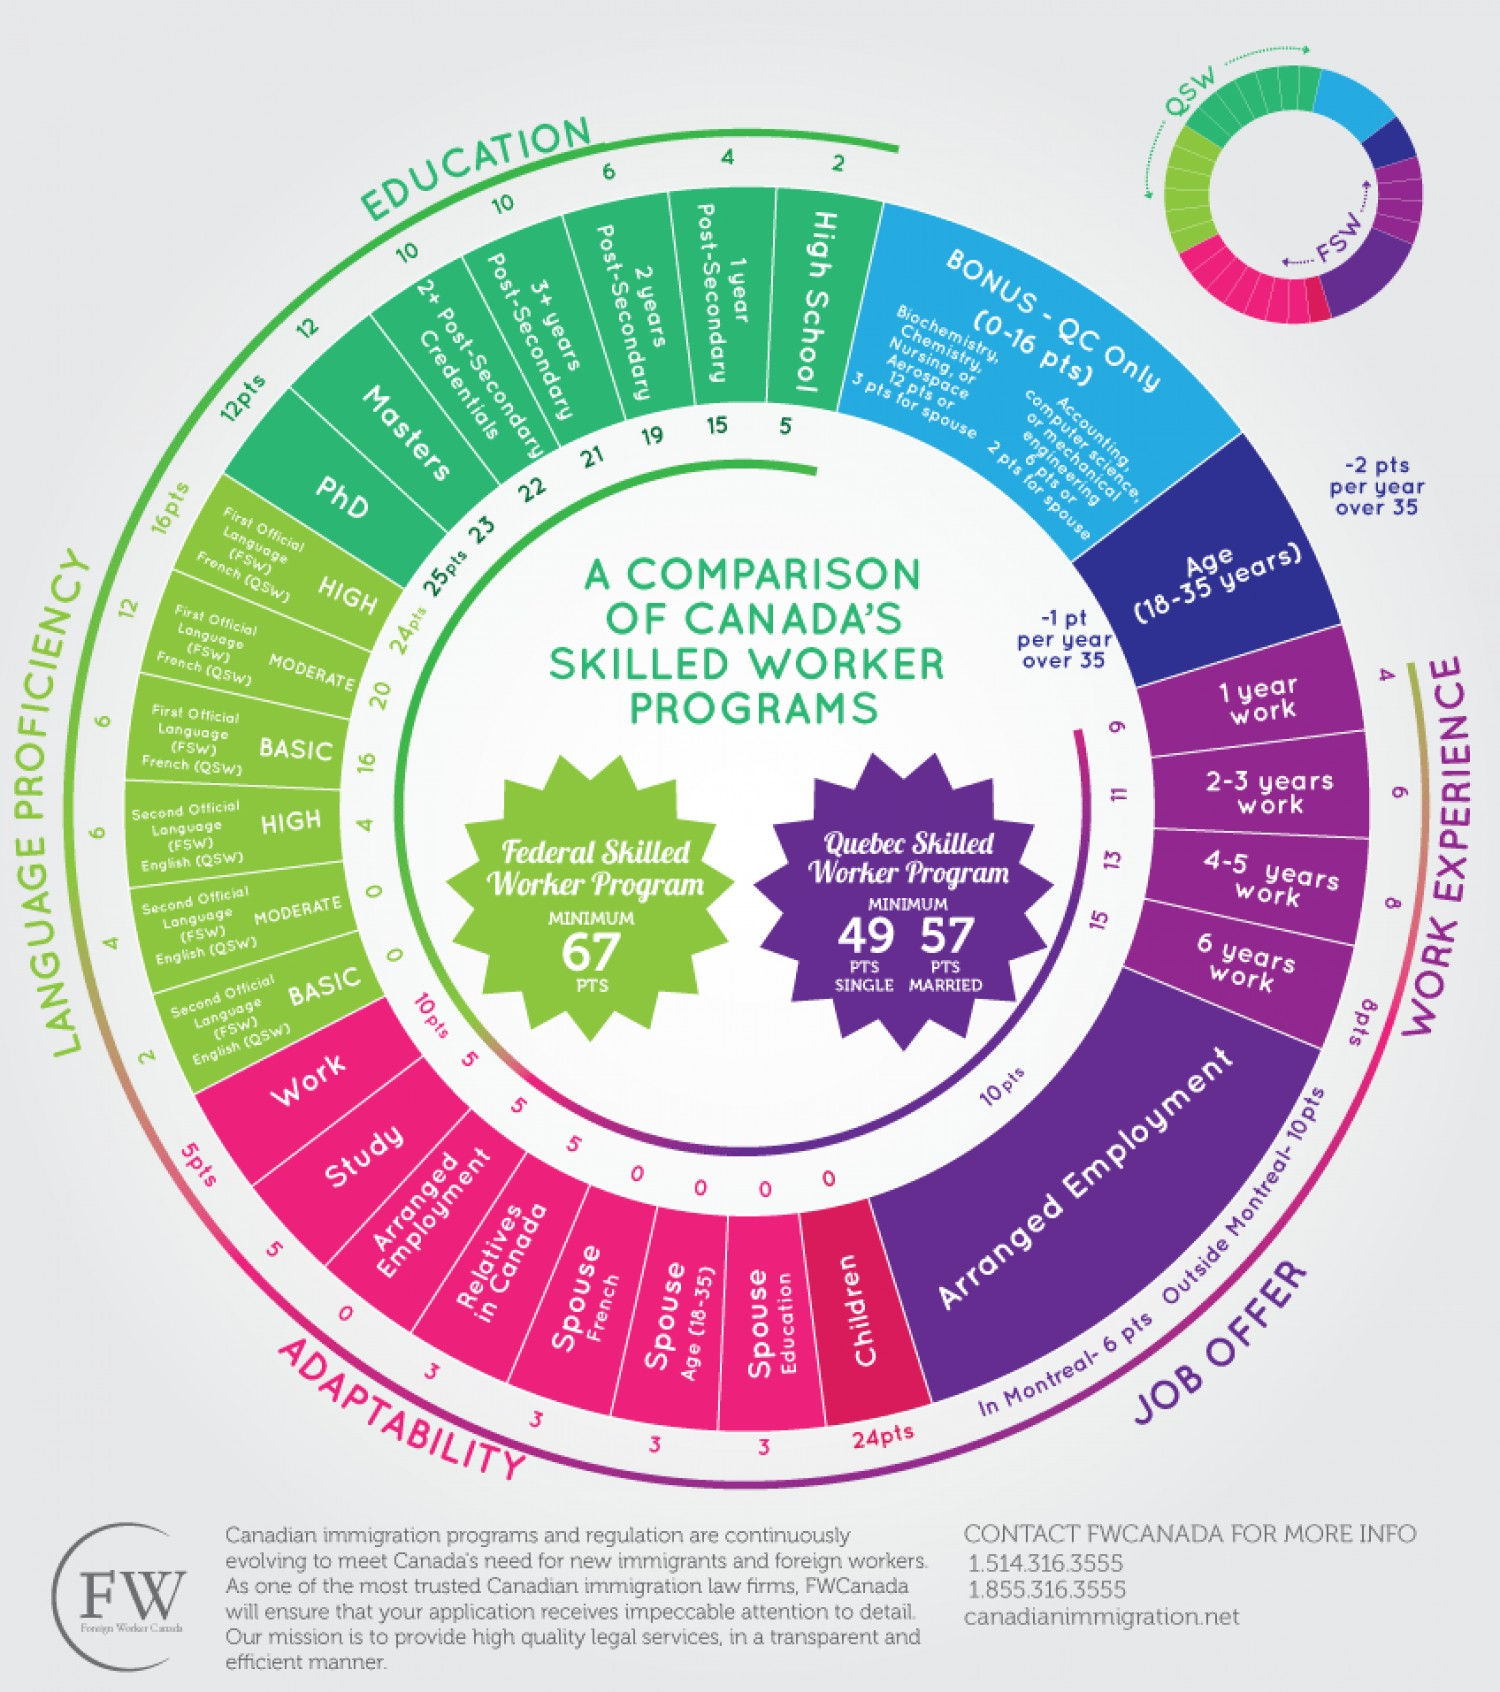 comparing-canadas-skilled-worker-programs_51910b55c88f6_w1500